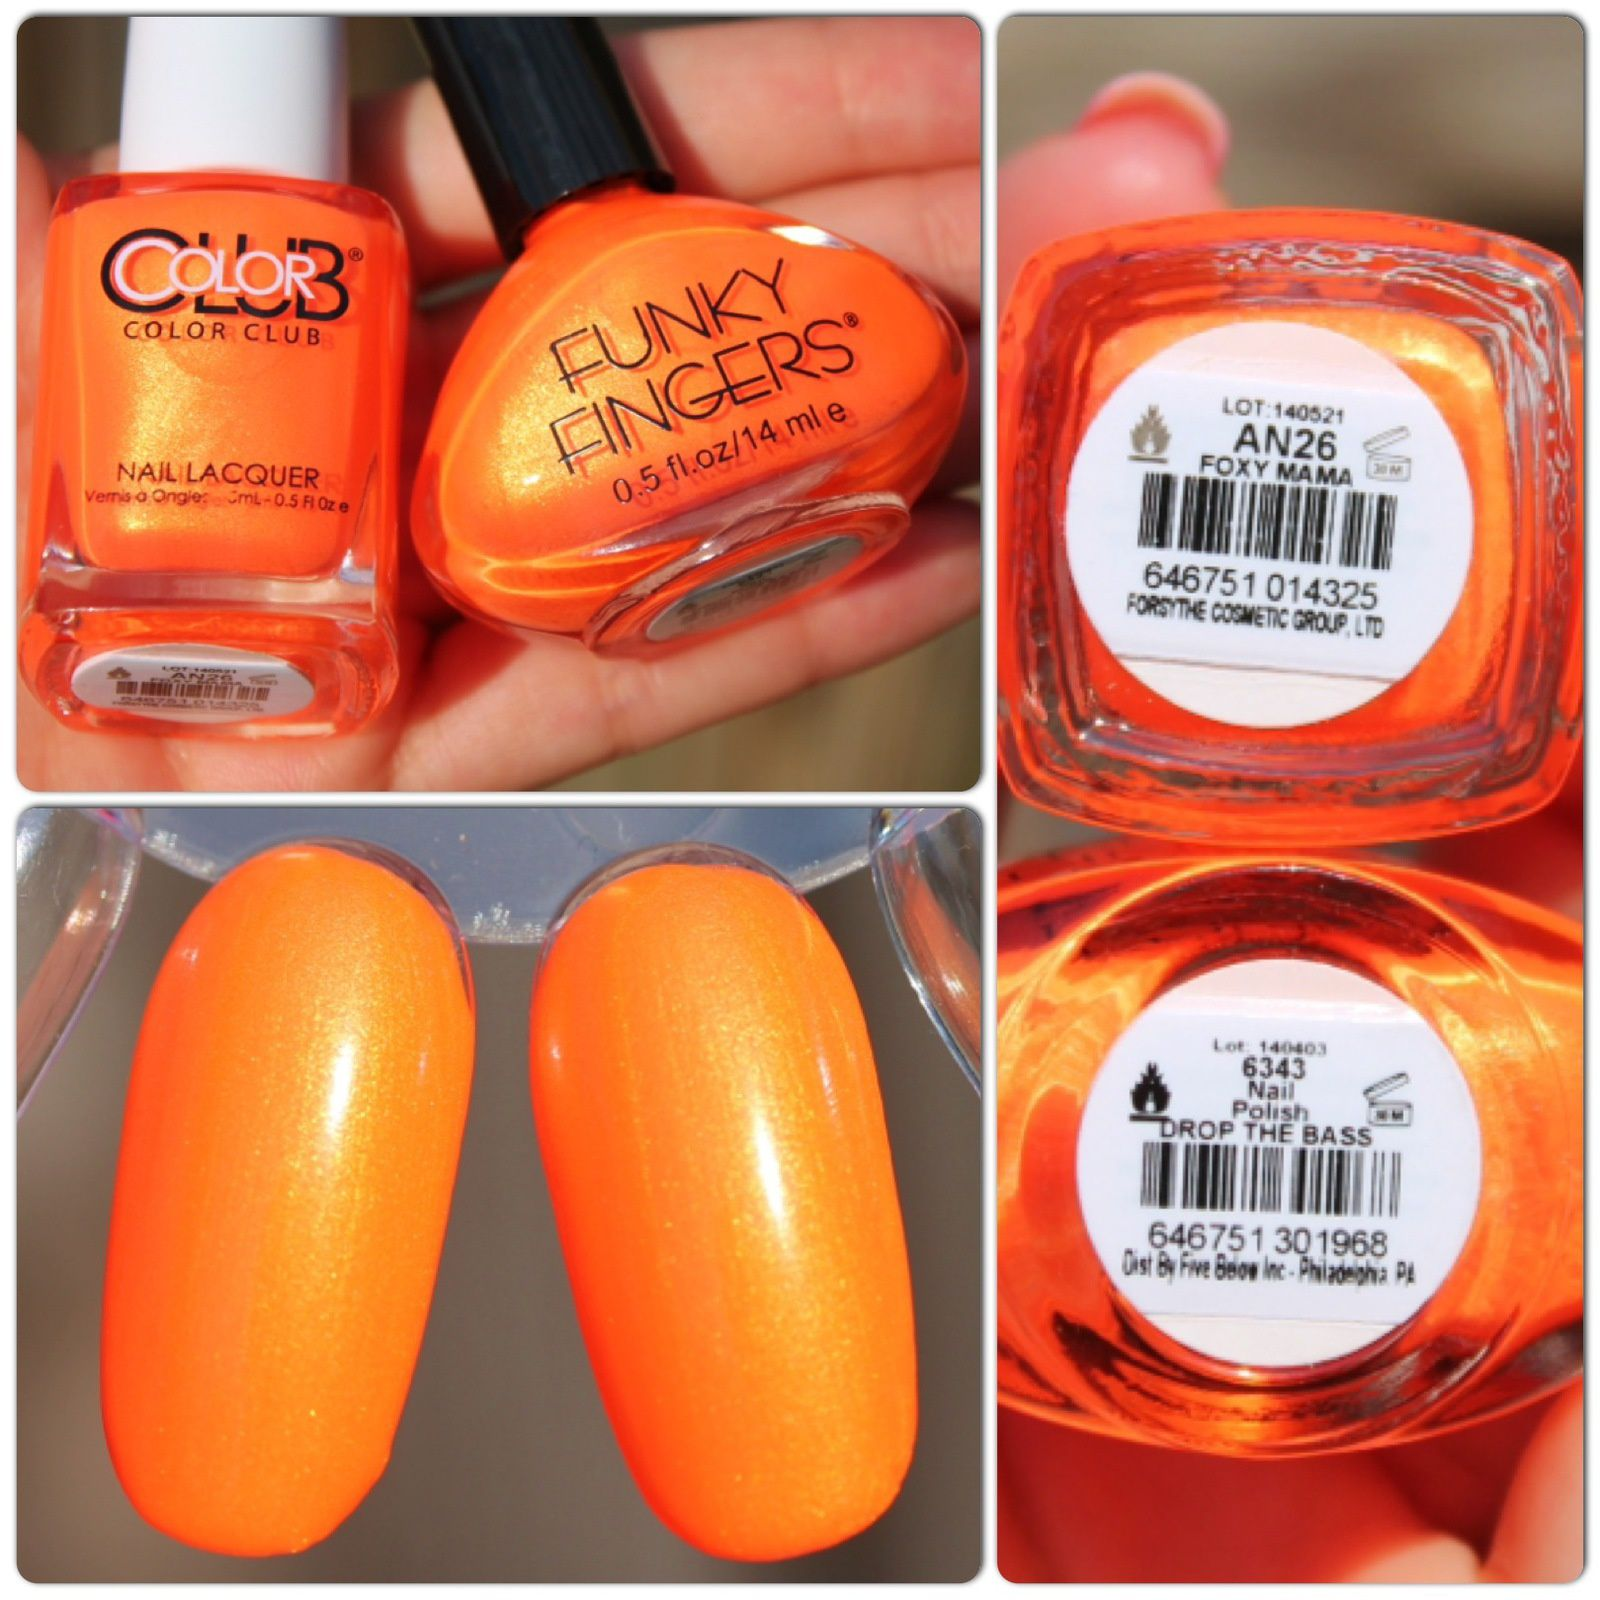 Dupe Alert! Color Club Poptastic 2014 vs. Funky Fingers Summer Neons ...